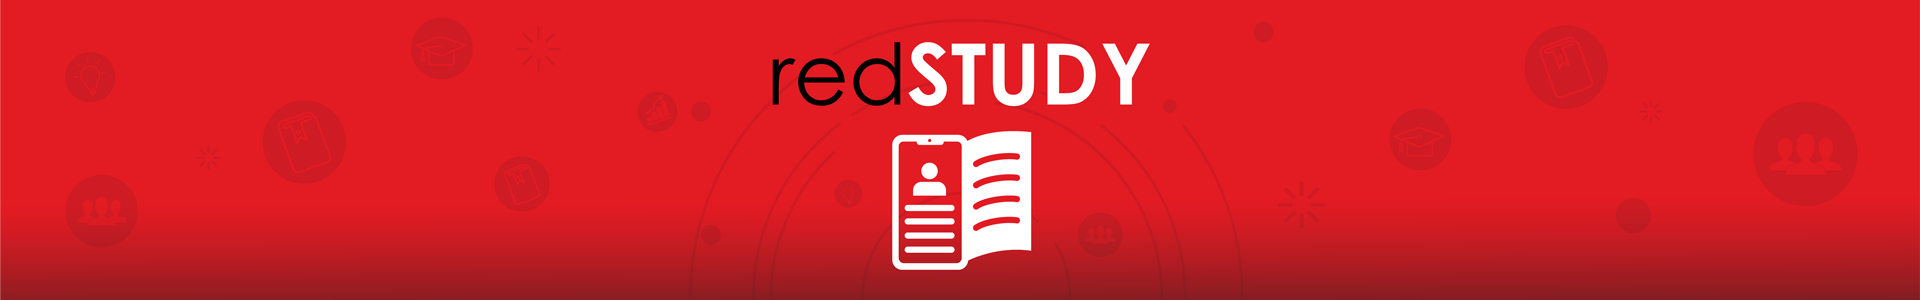 Get 10GB 4G LTE for your redONE Postpaid with redSTUDY Add-On at only RM10 a month